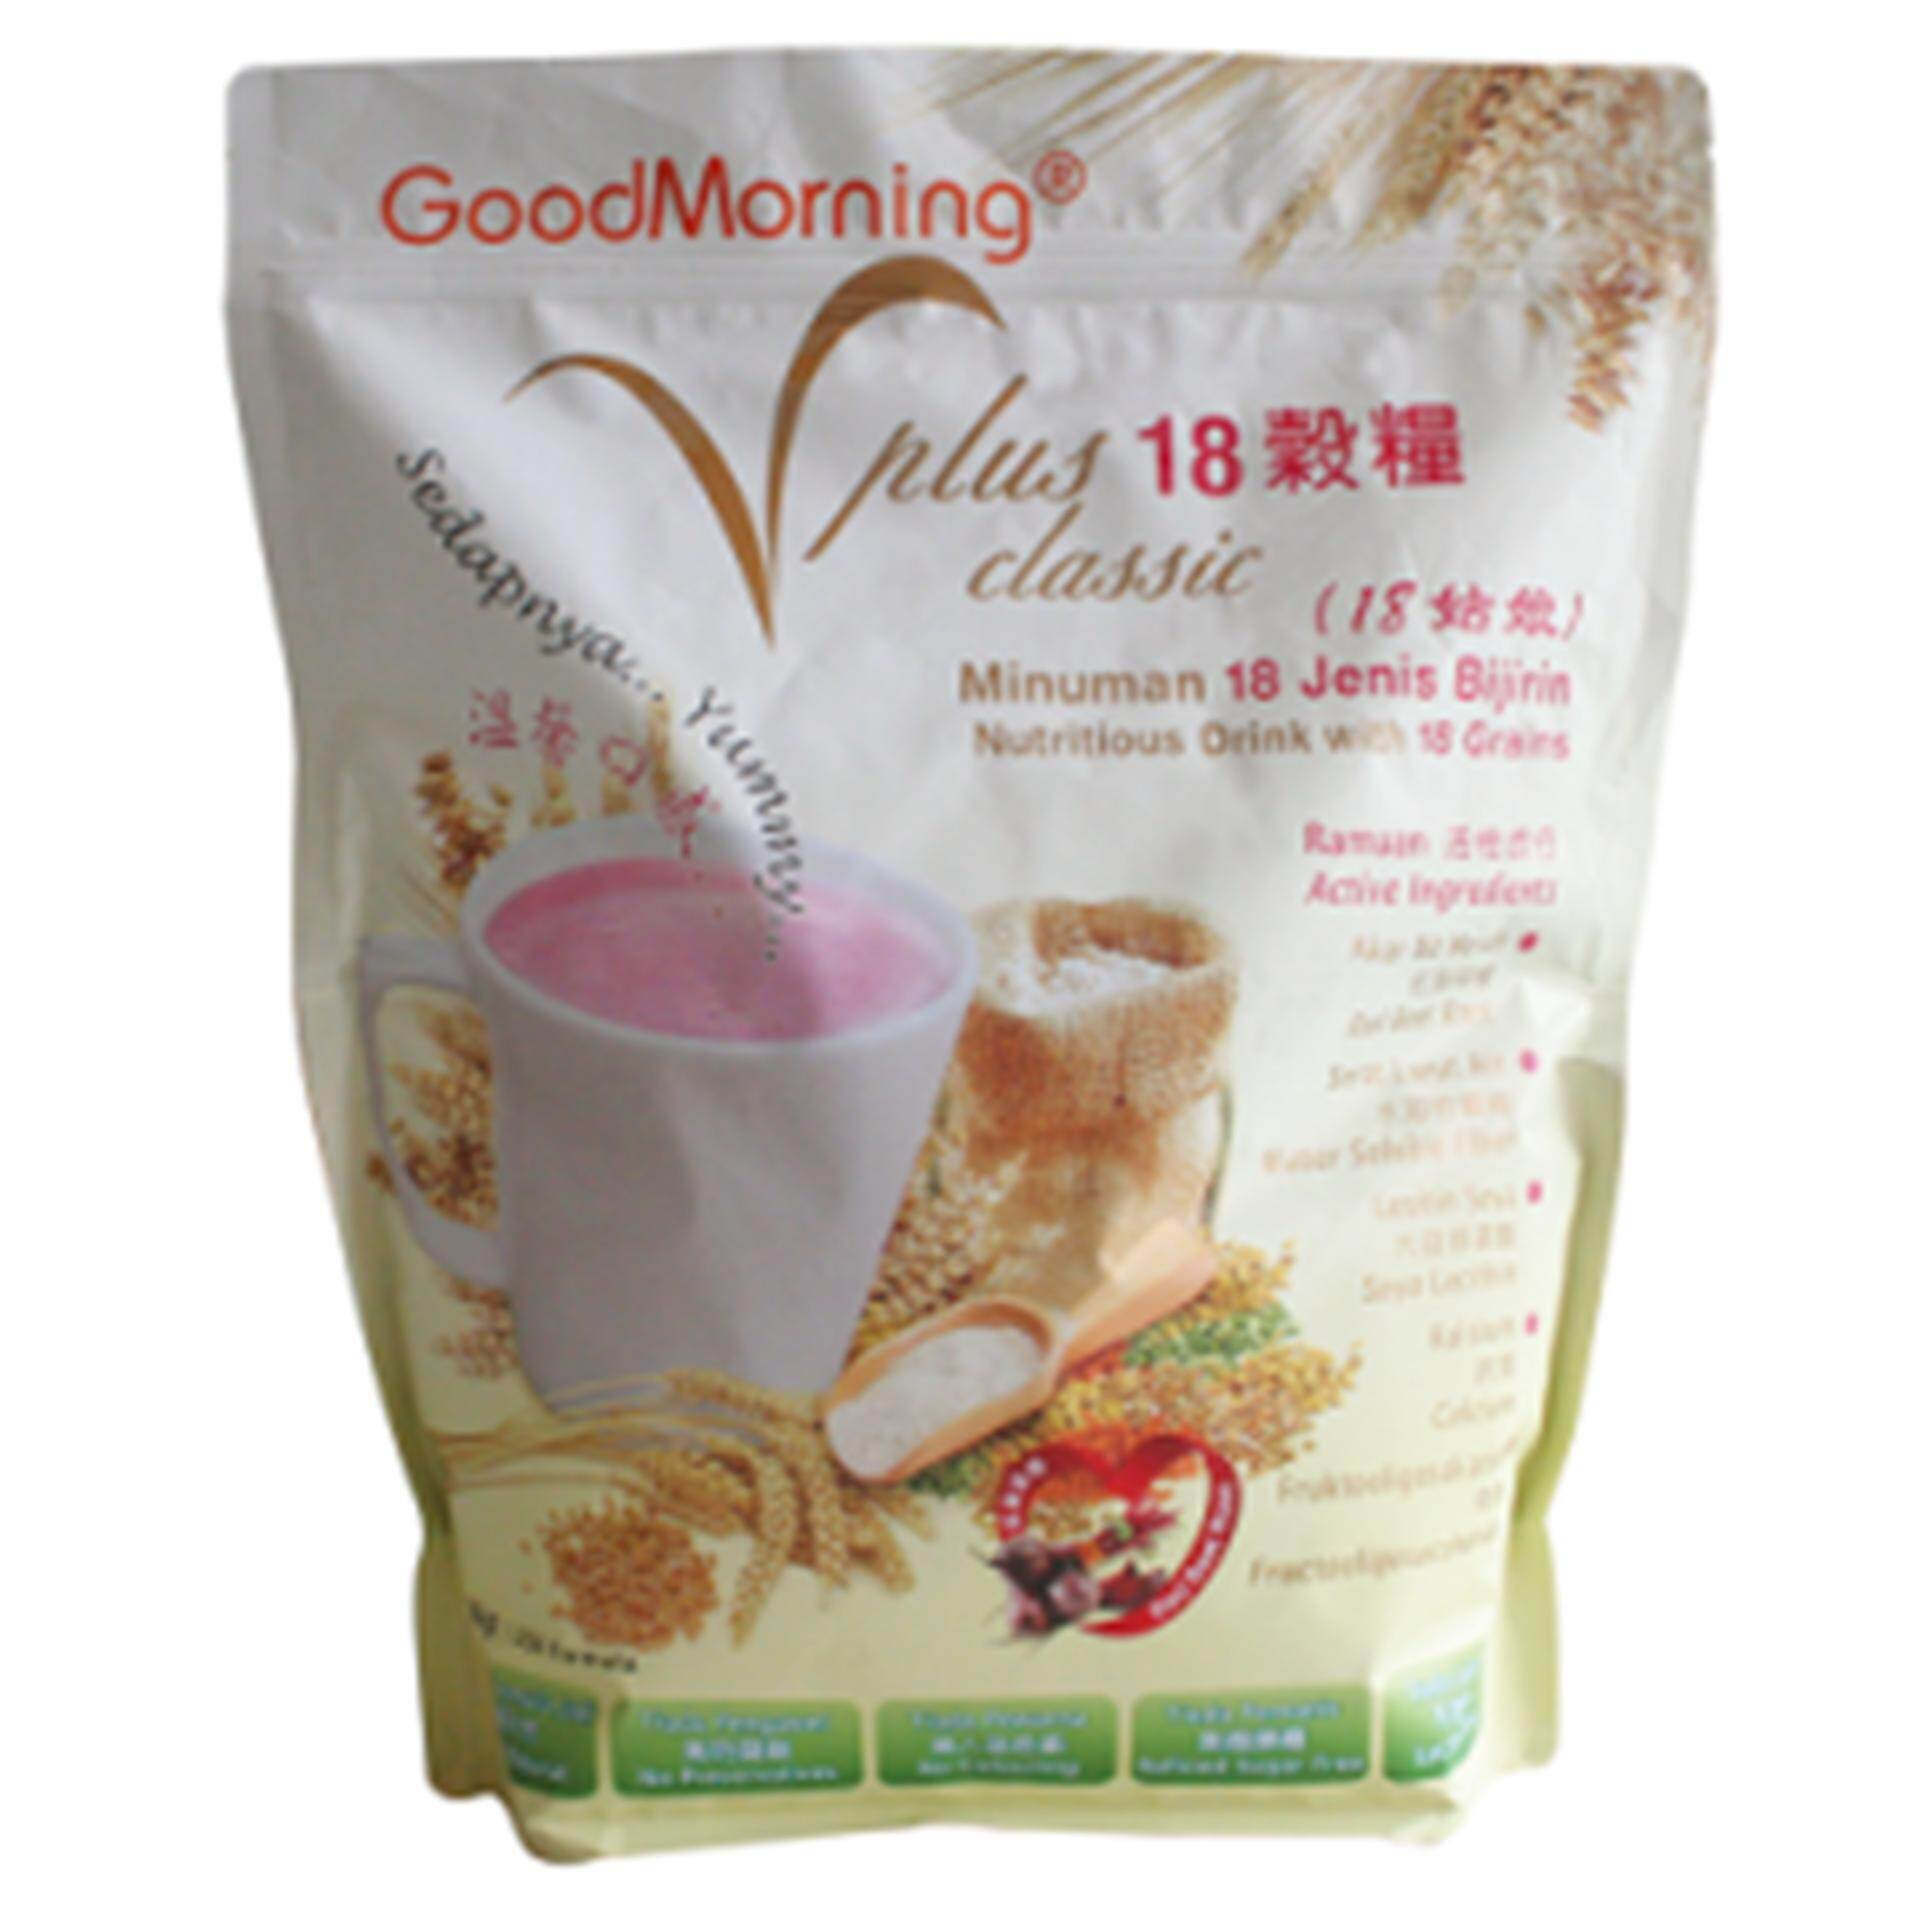 GOODMORNING VPLUS CLASSIC 18 GRAINS 3 KG